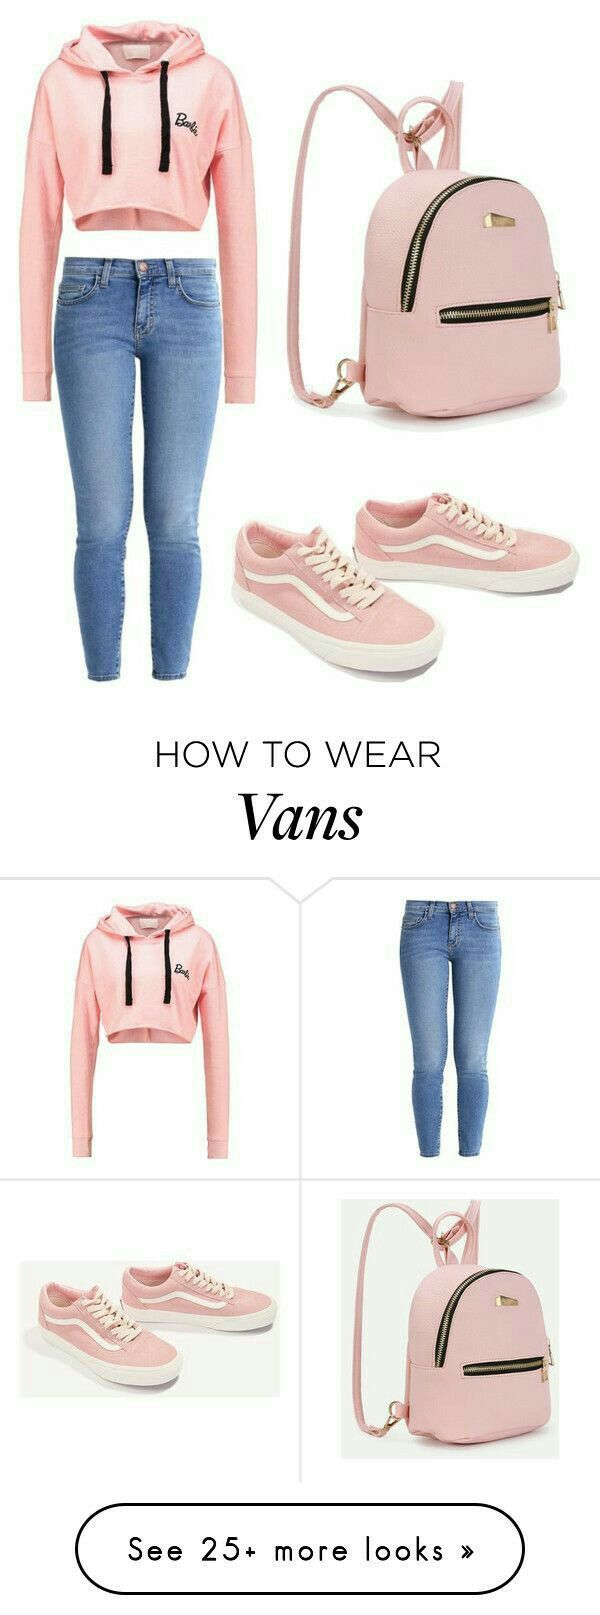 Pink lover like me? Then you'll love this look. #OOTD #AllPink #PinkVans #MomStyle #Cute